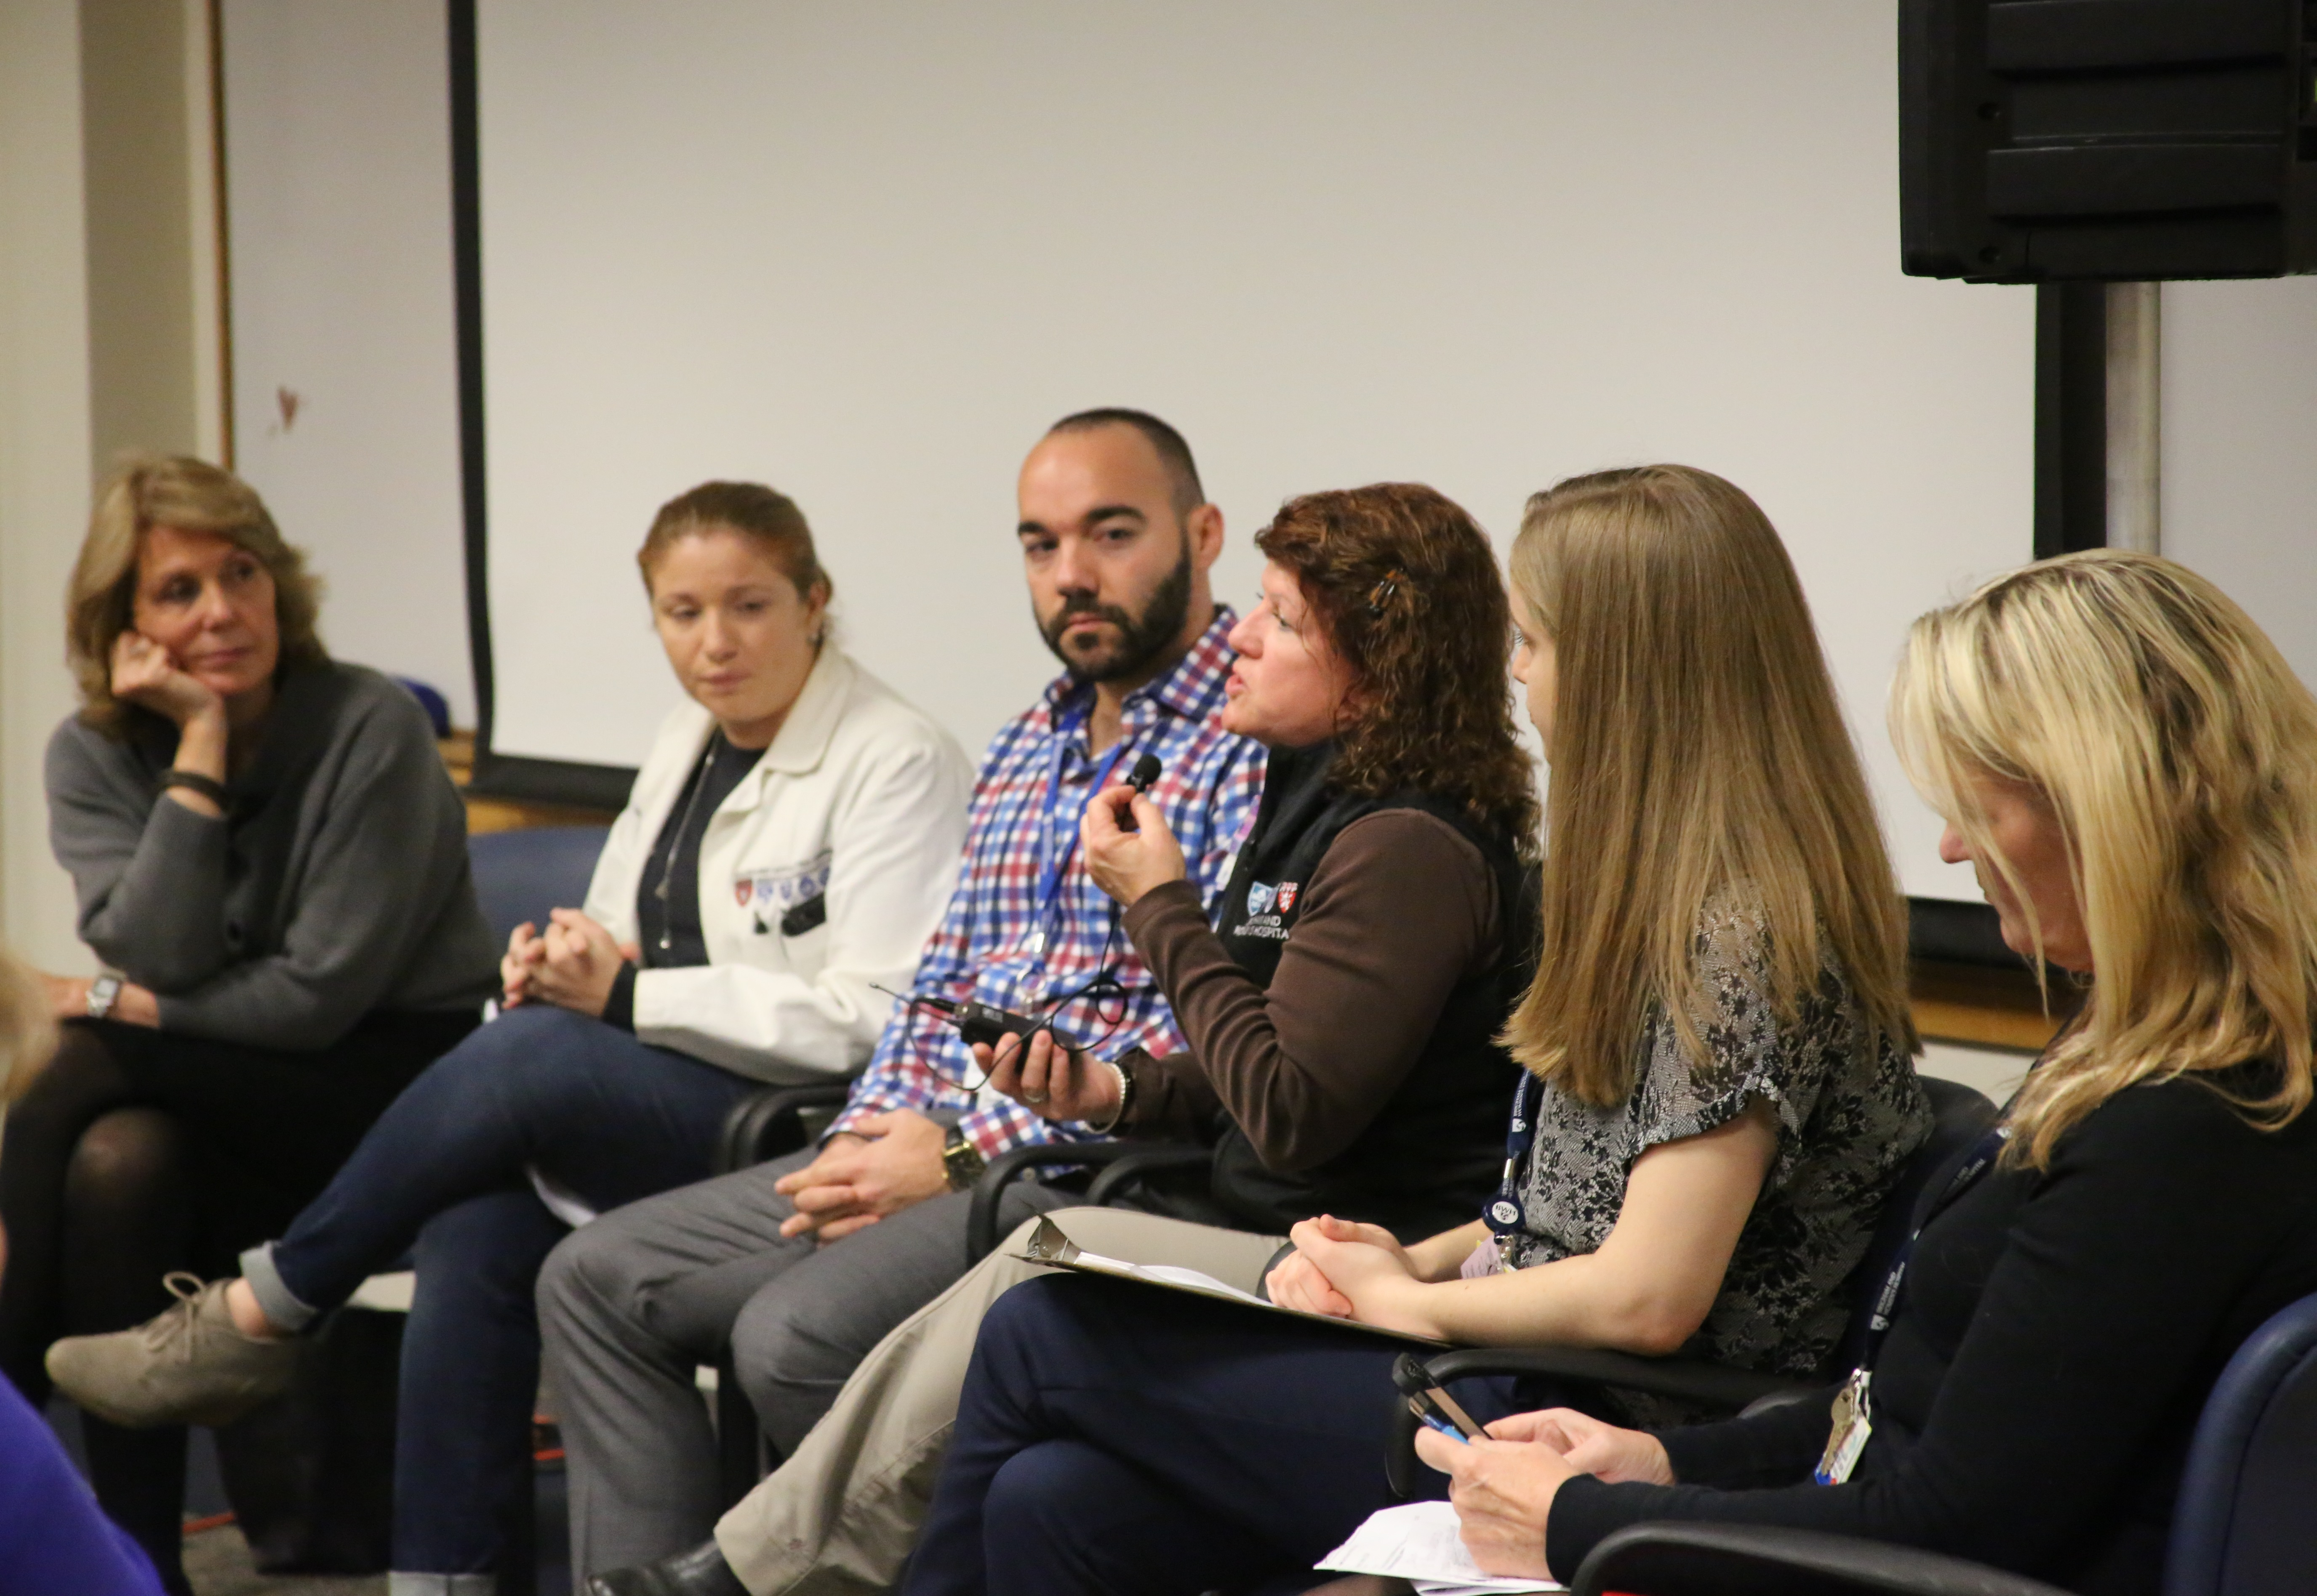 From left: Lynn Nichols, LICSW, panel moderator; Kristen Vella Gray, PA-C; Derek Monette, MD; Annie Lewis-O'Connor, PhD, NP-BC, MPH, FAAN; Isabel Checa, MSW; Deborah Jordan, MSW, LICSW